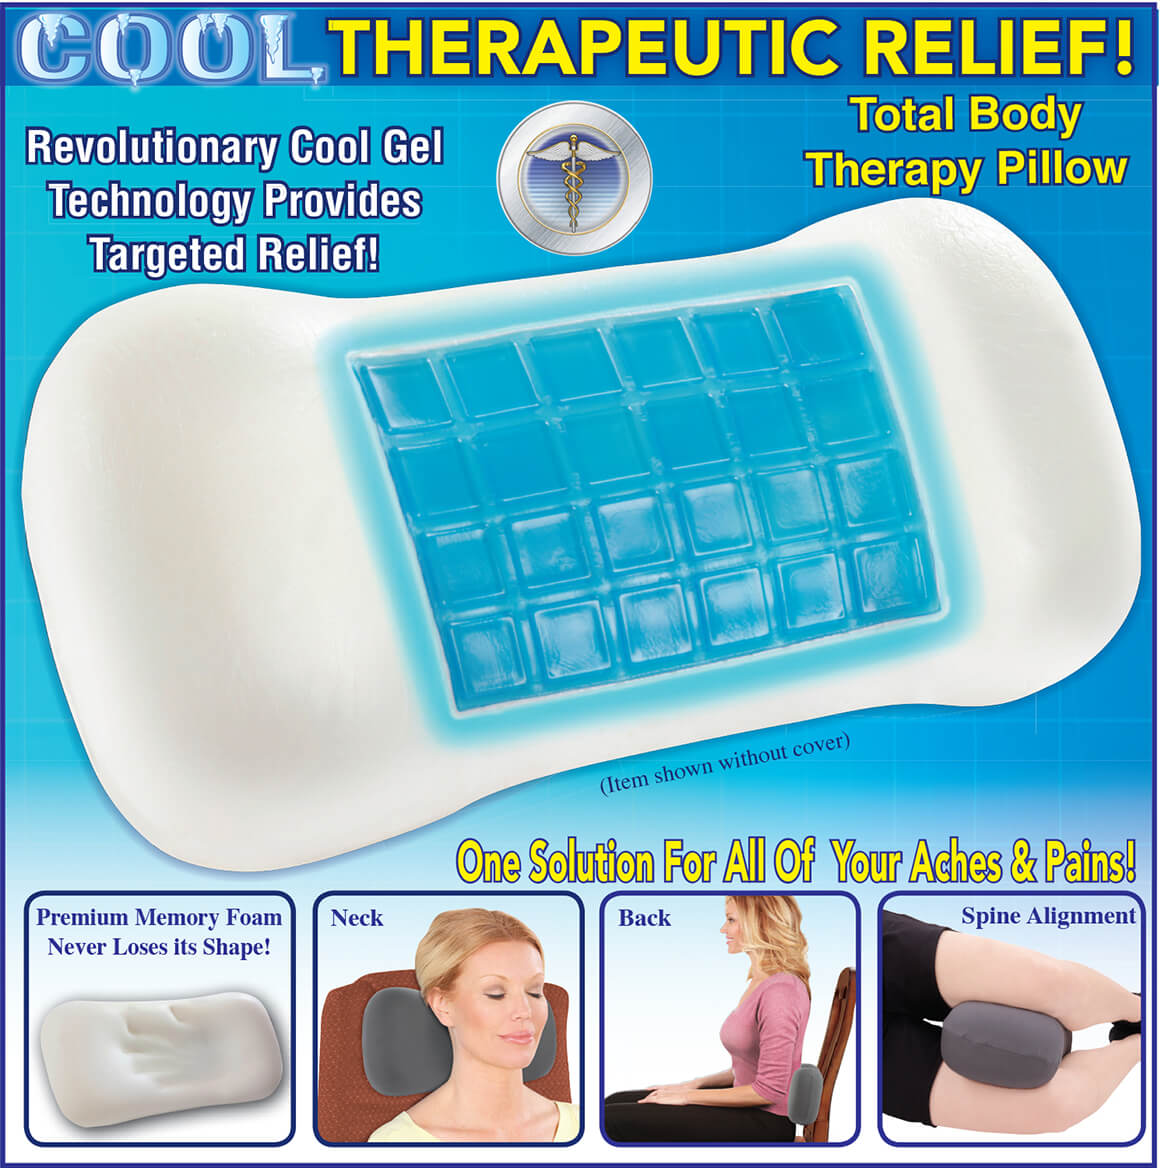 Total Body Therapy Pillow-369797